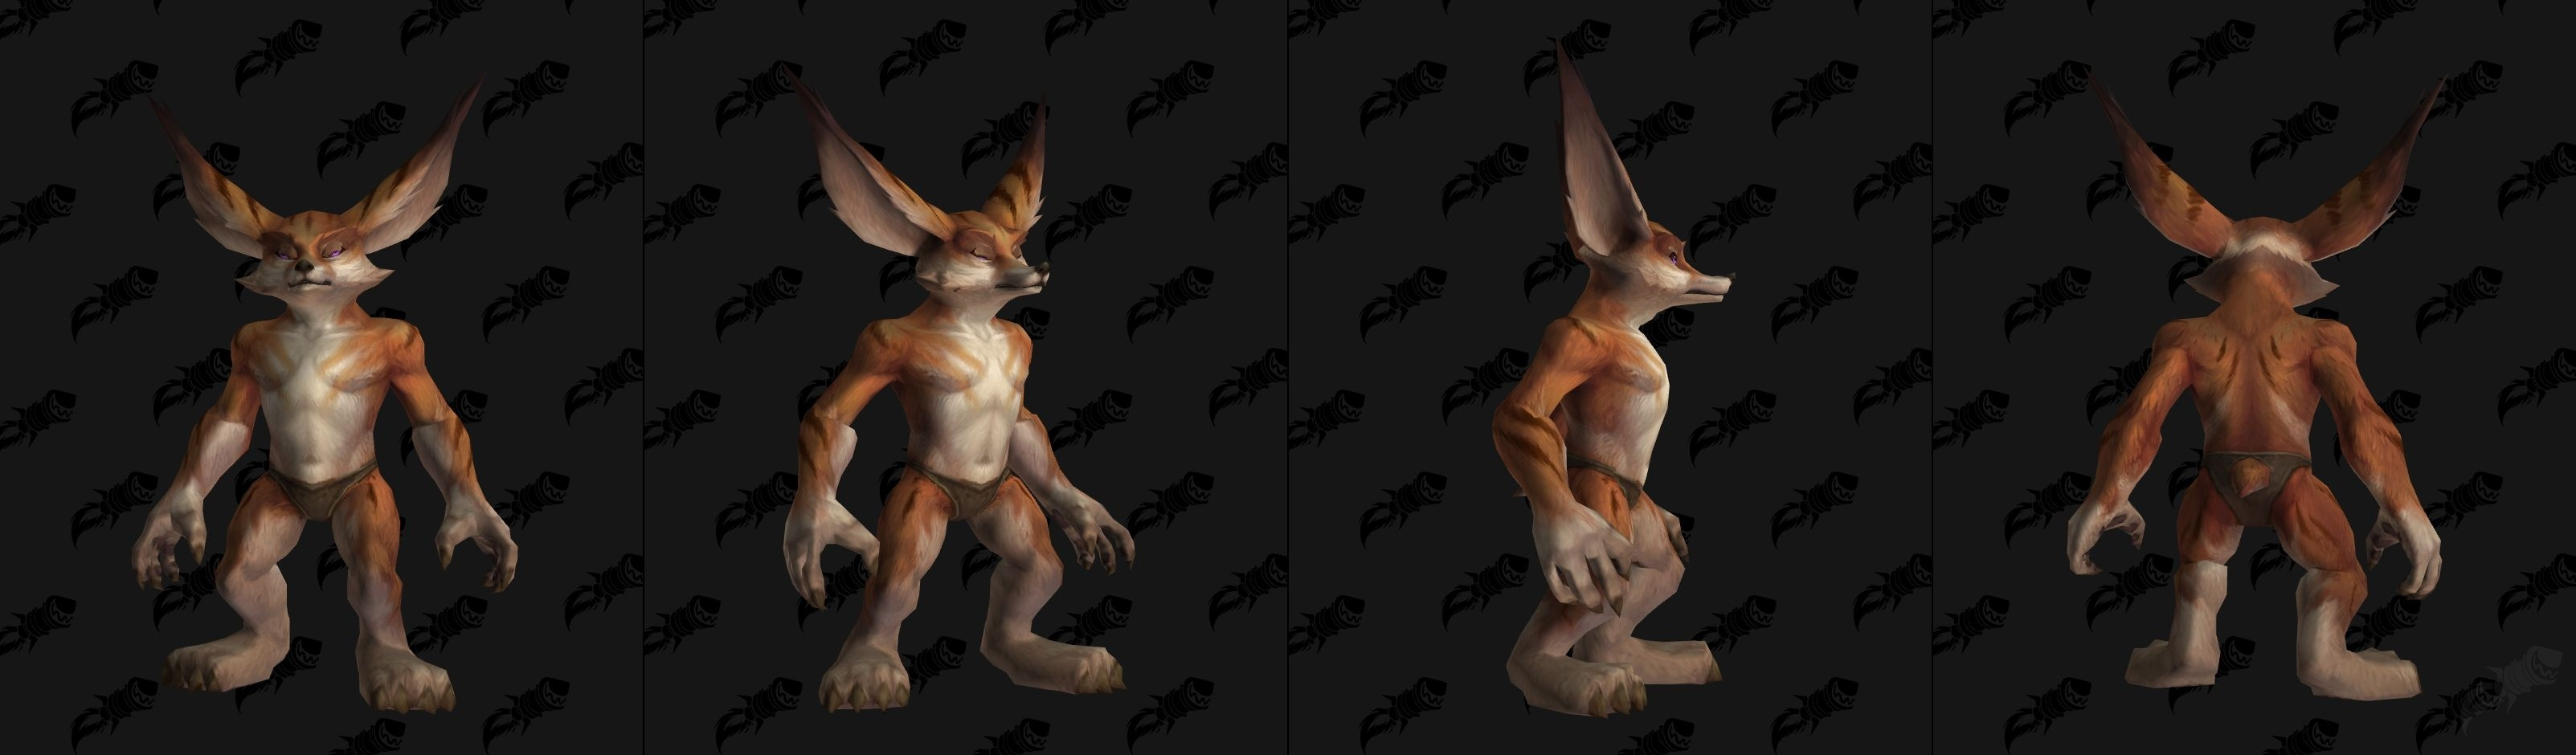 Vulpera Models and Animations Now in Model Viewer - Wowhead News